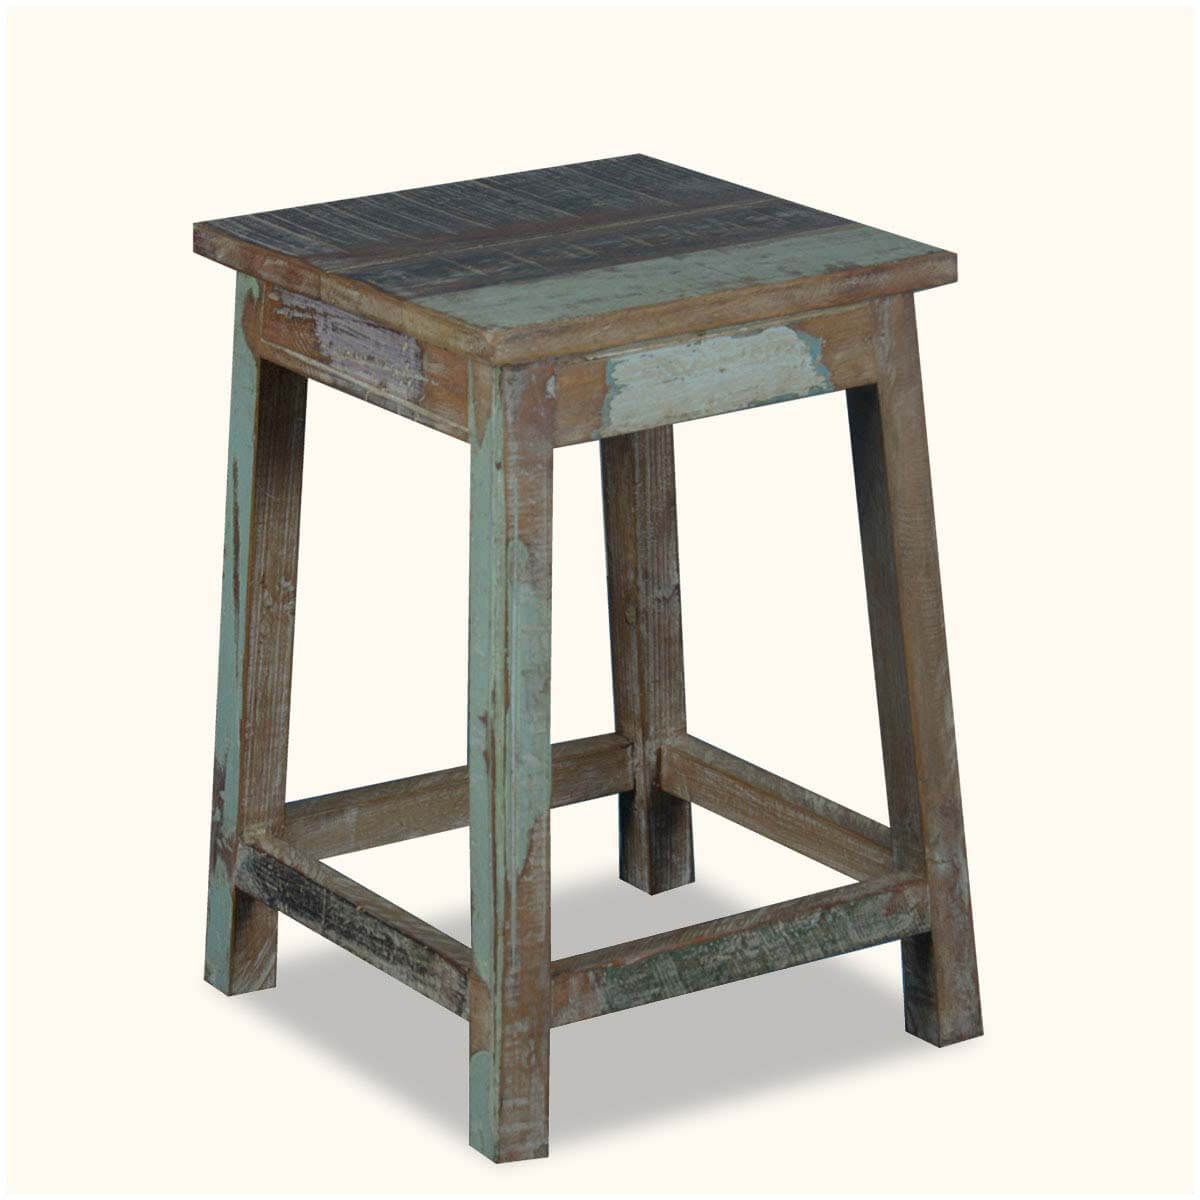 Square Rustic Reclaimed Wood 18 Quot Pedestal End Table Stool